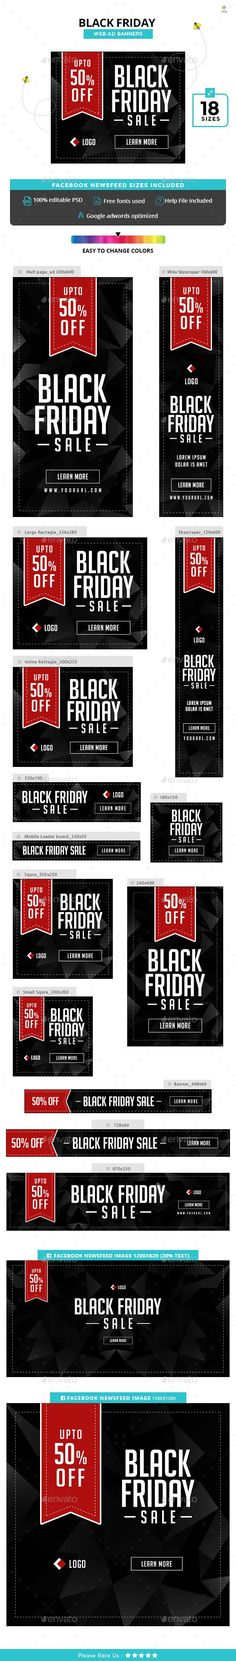 Black Friday Banners - #Banners & Ads #Web Elements